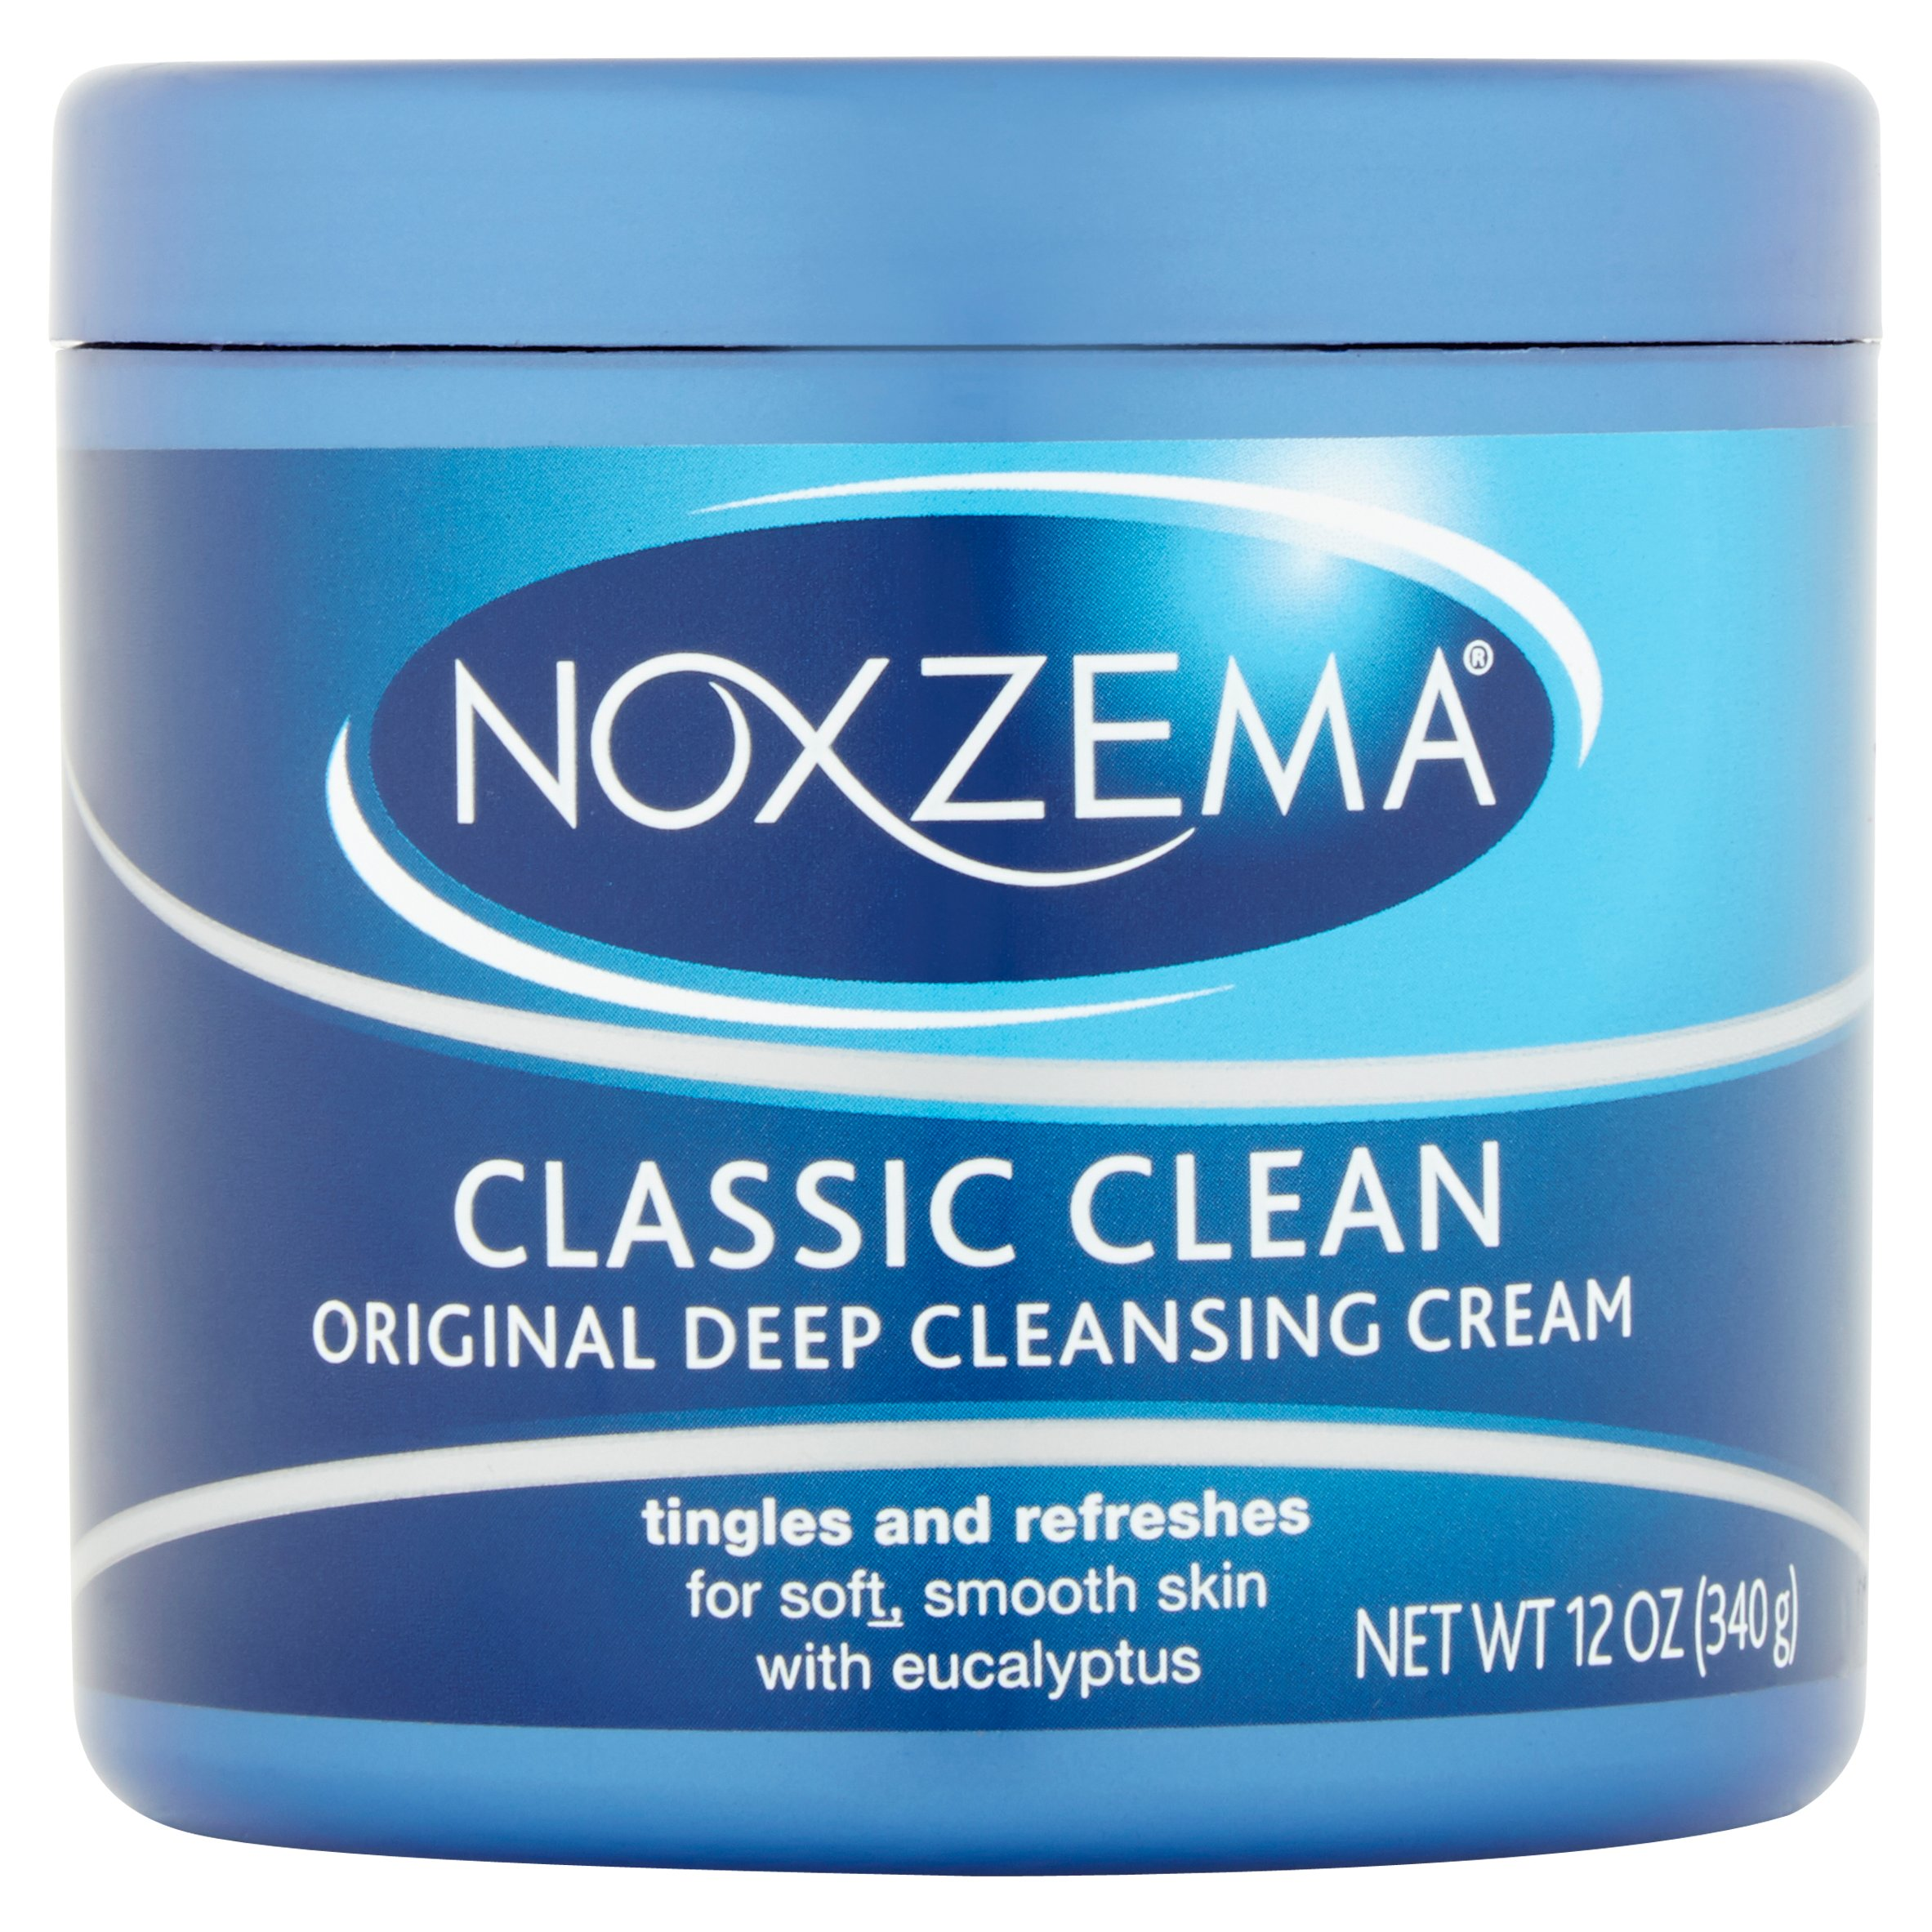 Noxzema Classic Clean Cleanser Original Deep Cleansing 12 oz